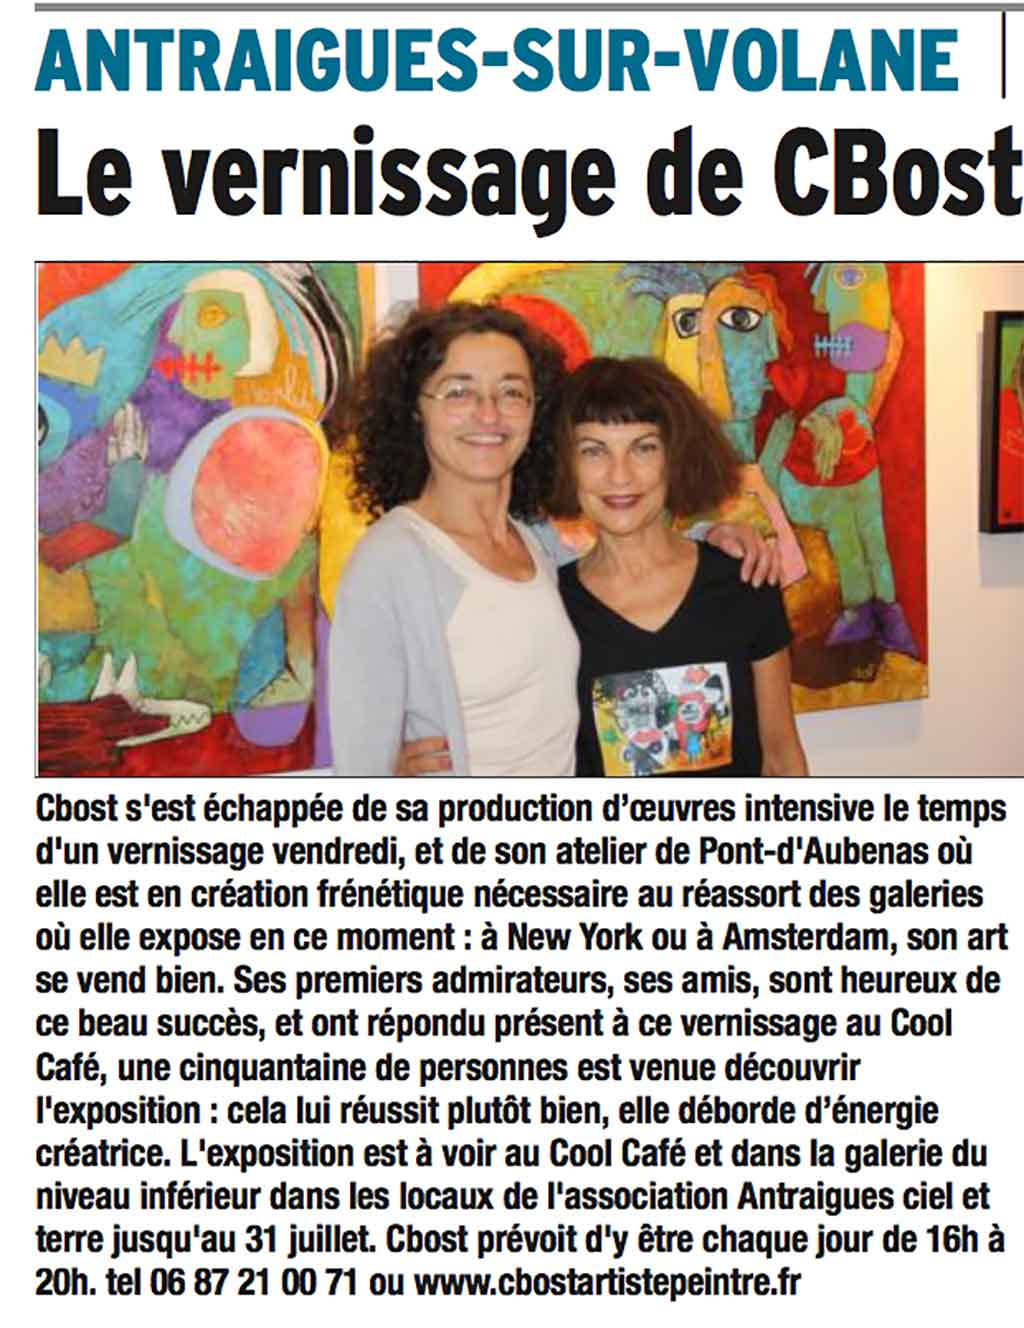 CBost - Exposition Antraigues Cool Café 2017 - 05